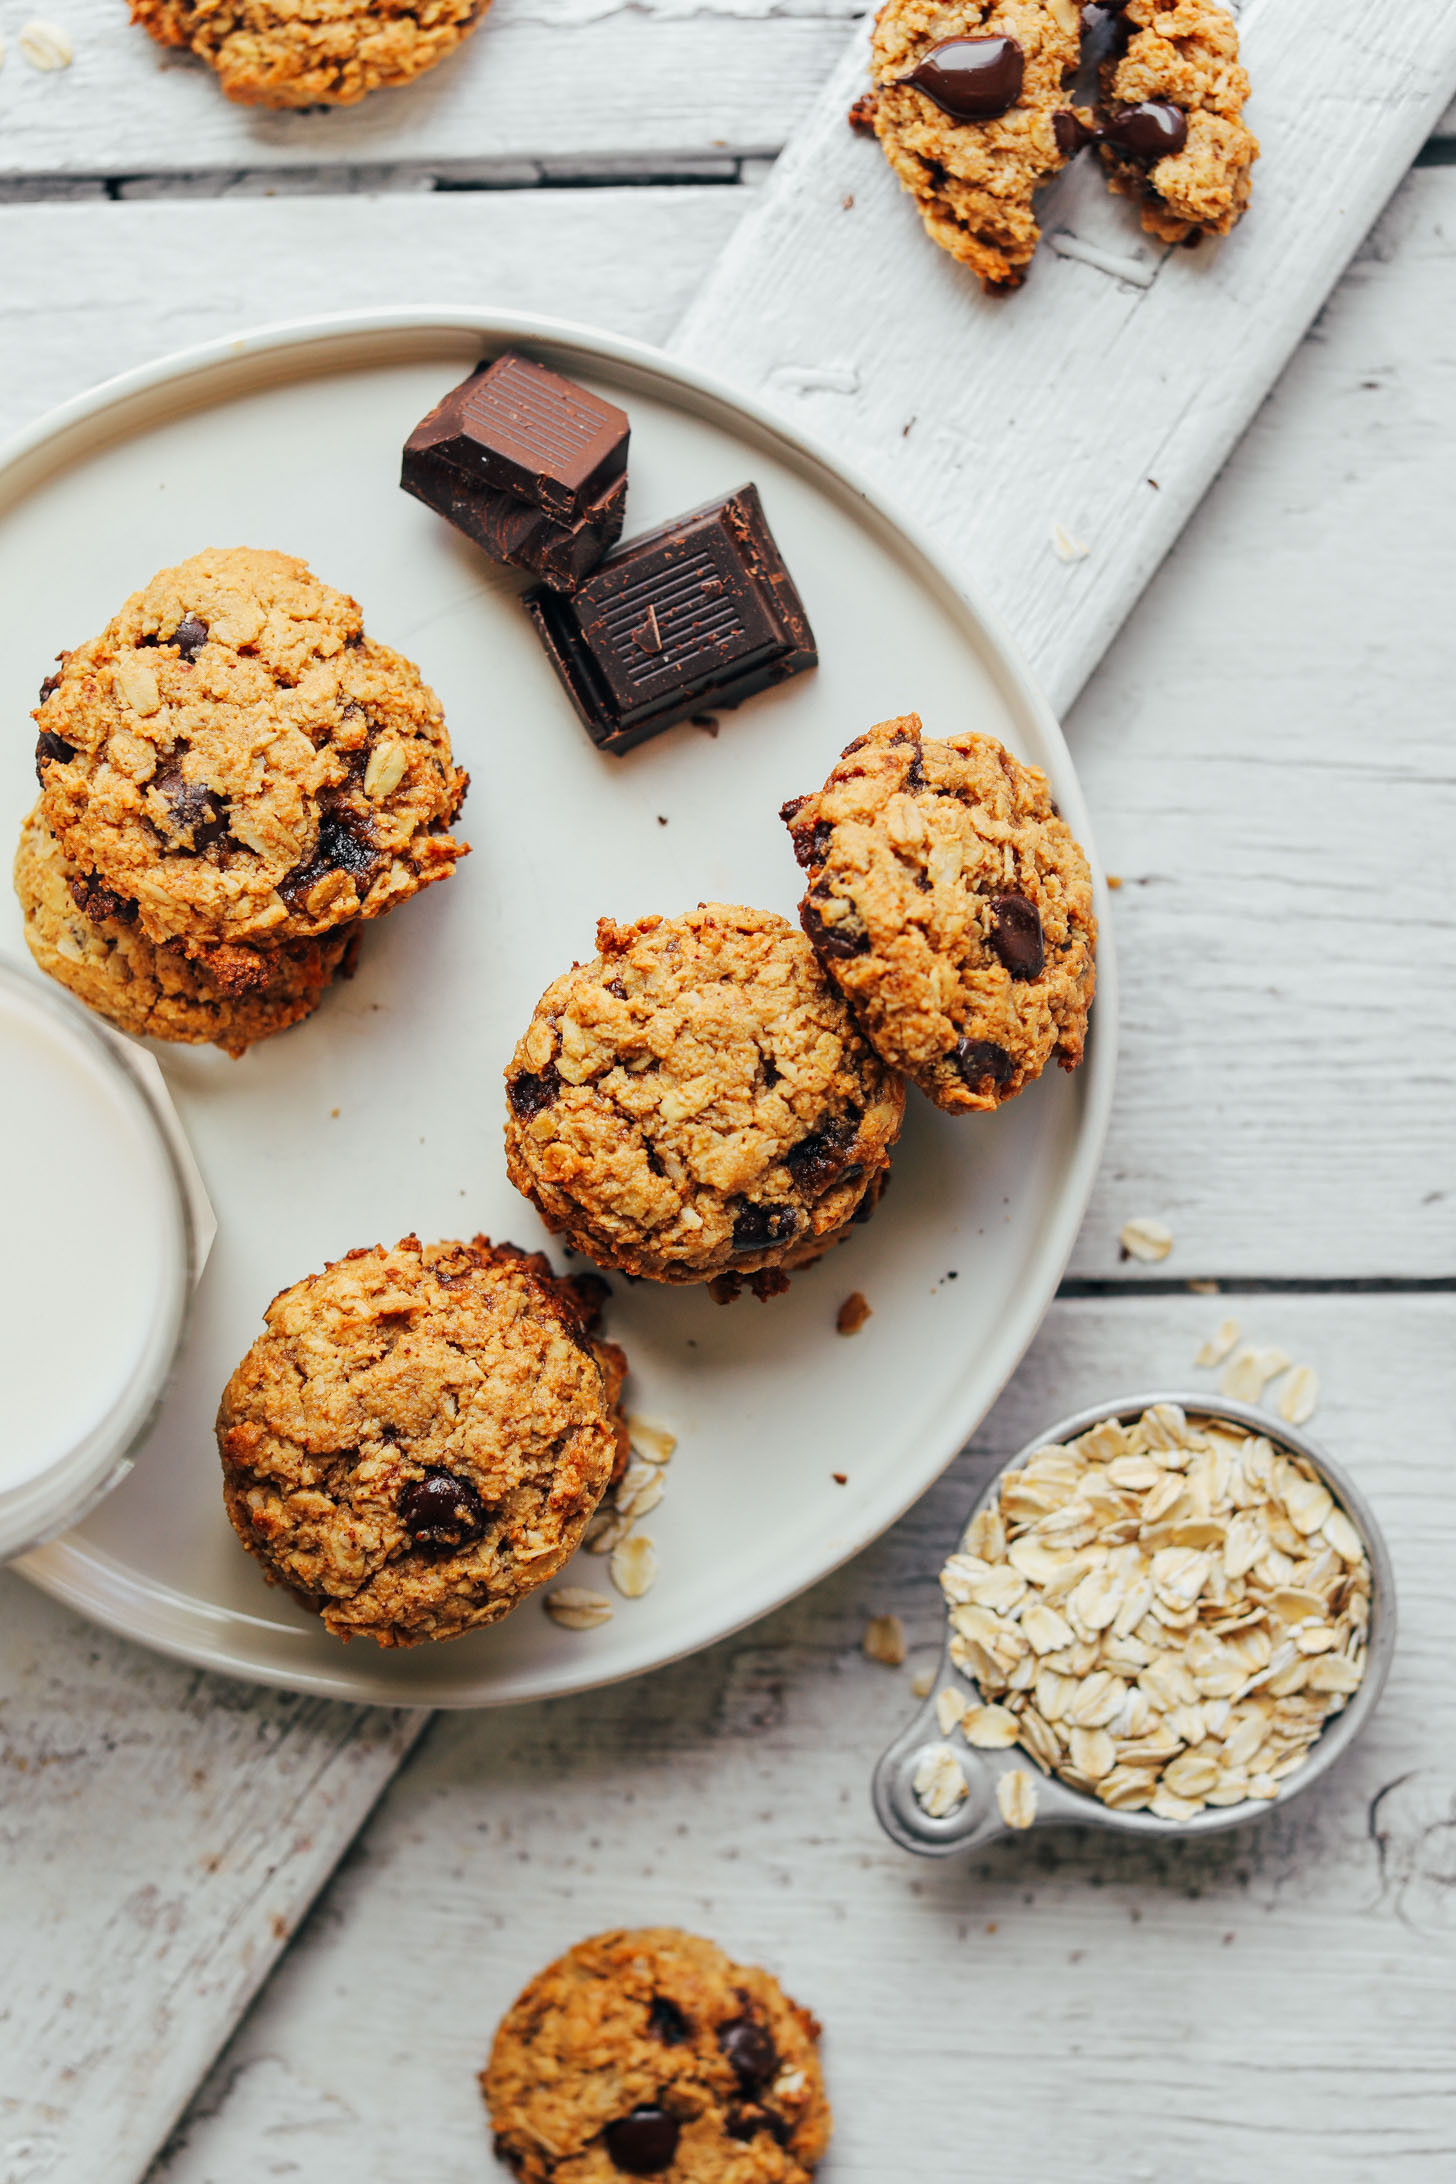 Choc Chip Oatmeal Cookies Healthy  Gluten Free Oatmeal Chocolate Chip Cookies